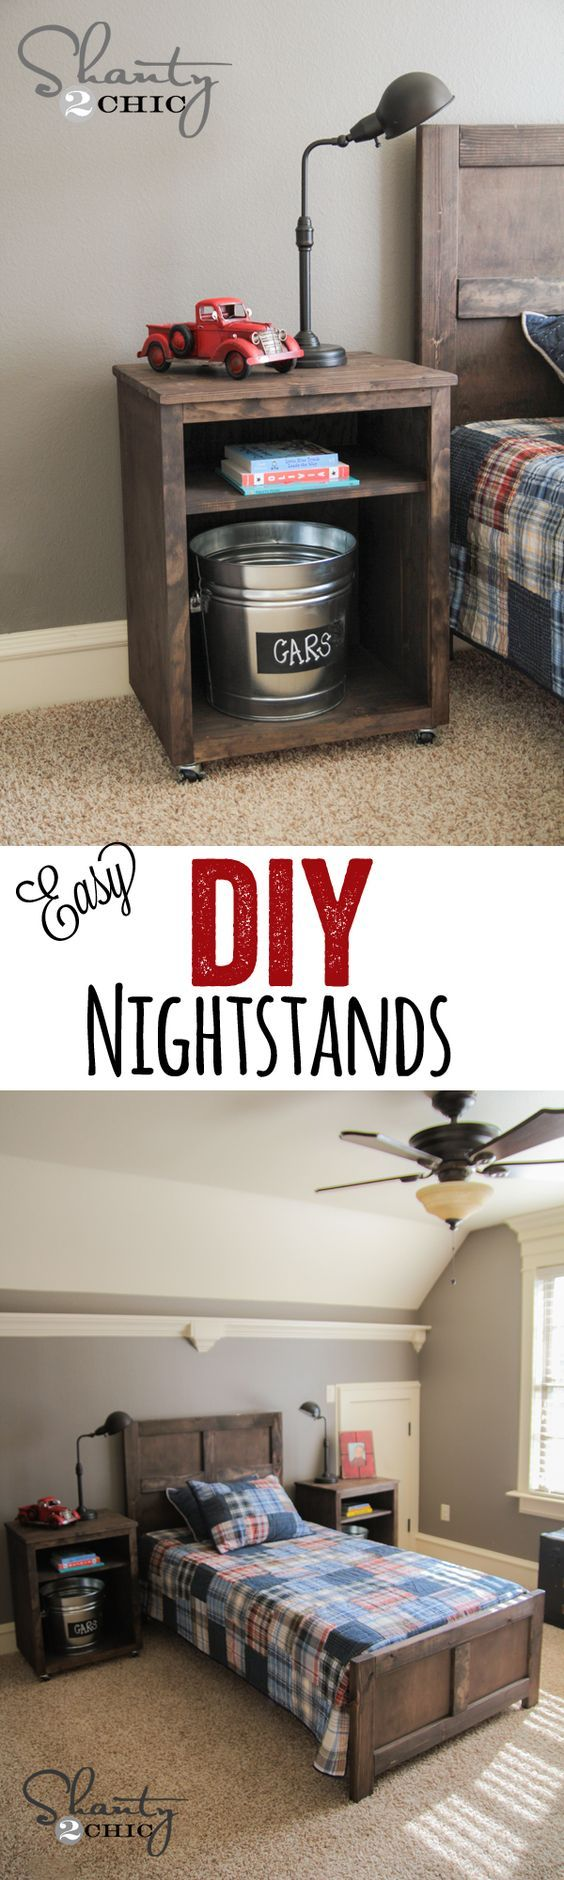 Best 25 night stands ideas on pinterest bedroom night for Diy night stand